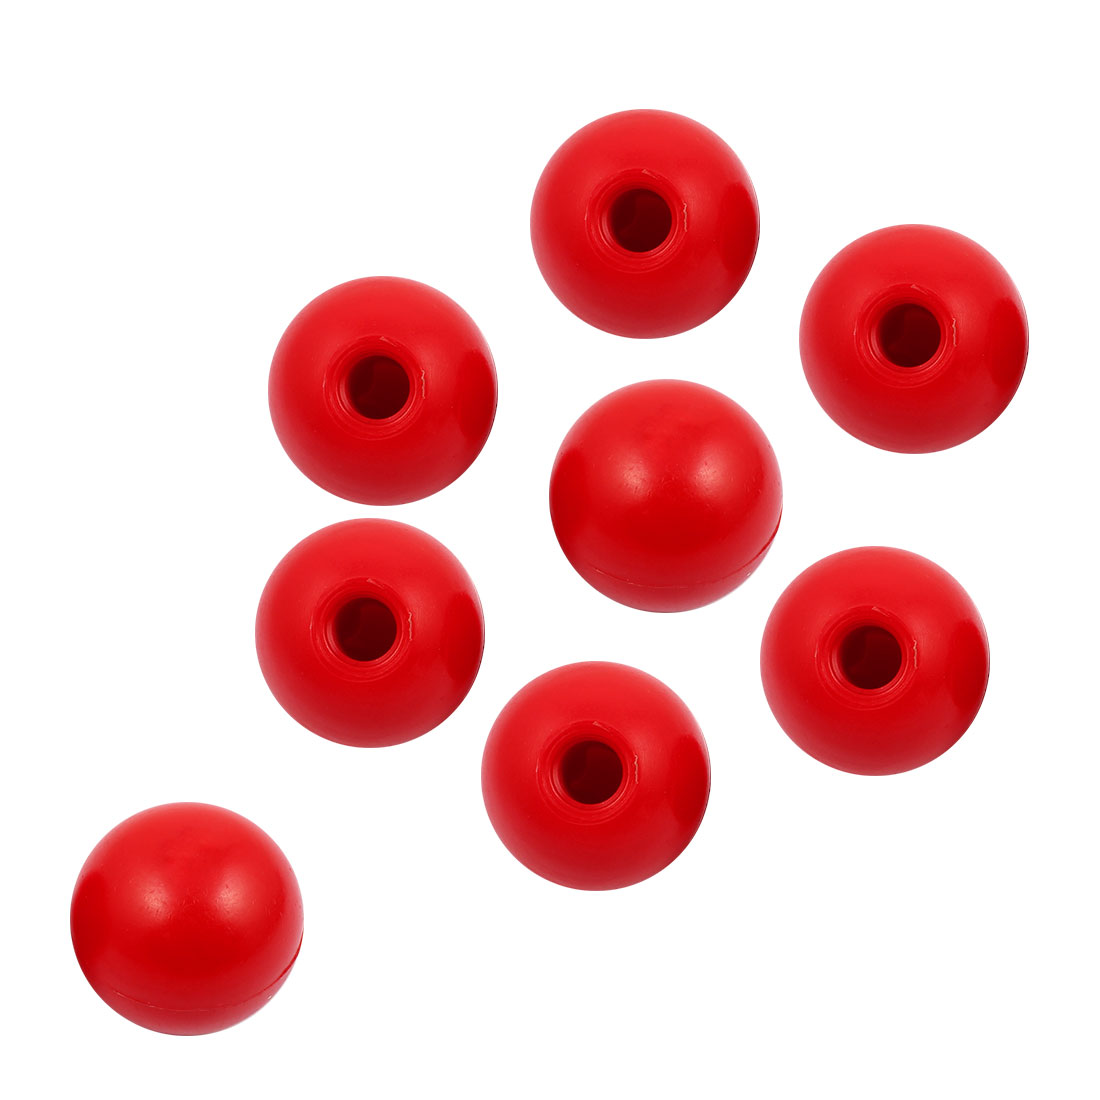 8 Pcs M12 x 40mm Plastic Ball Machine Tool Accessories Console Handle Red